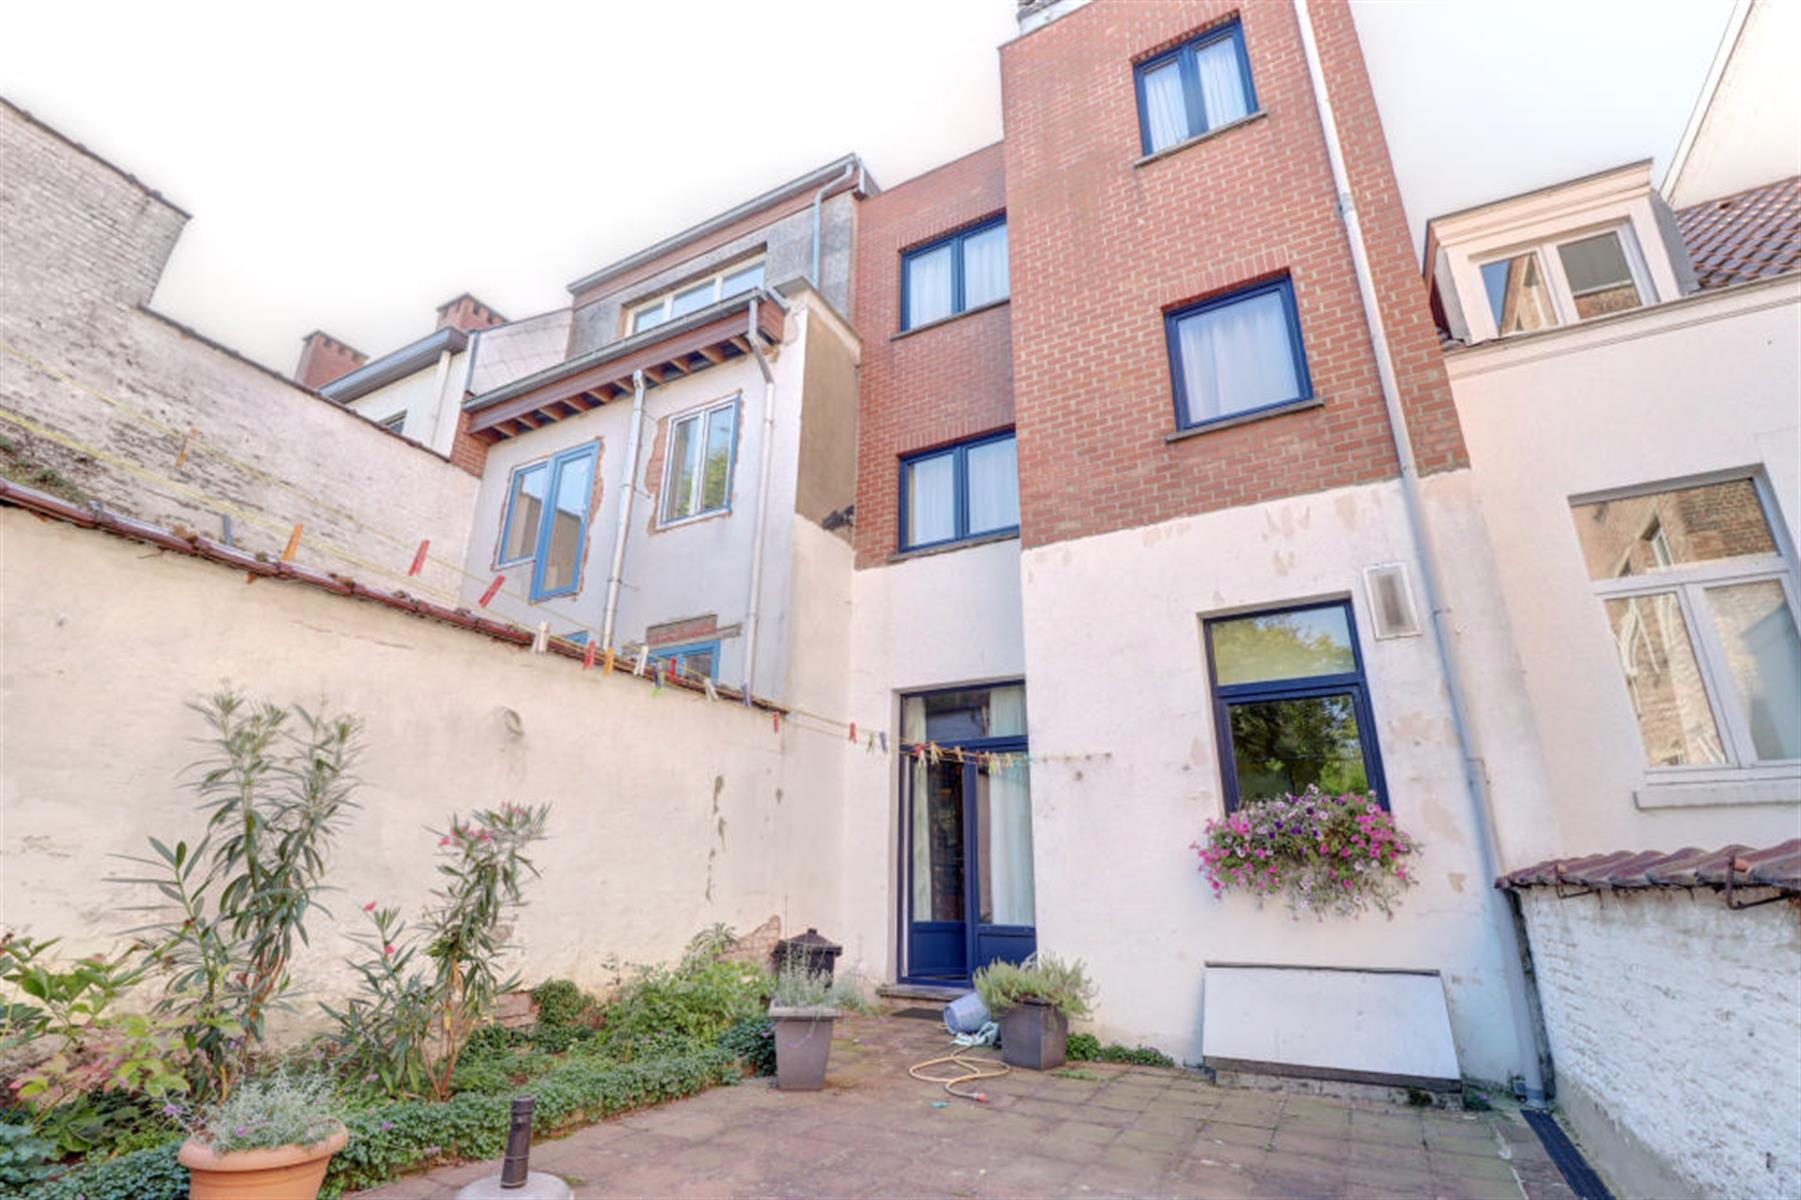 House - Uccle - #3905975-2